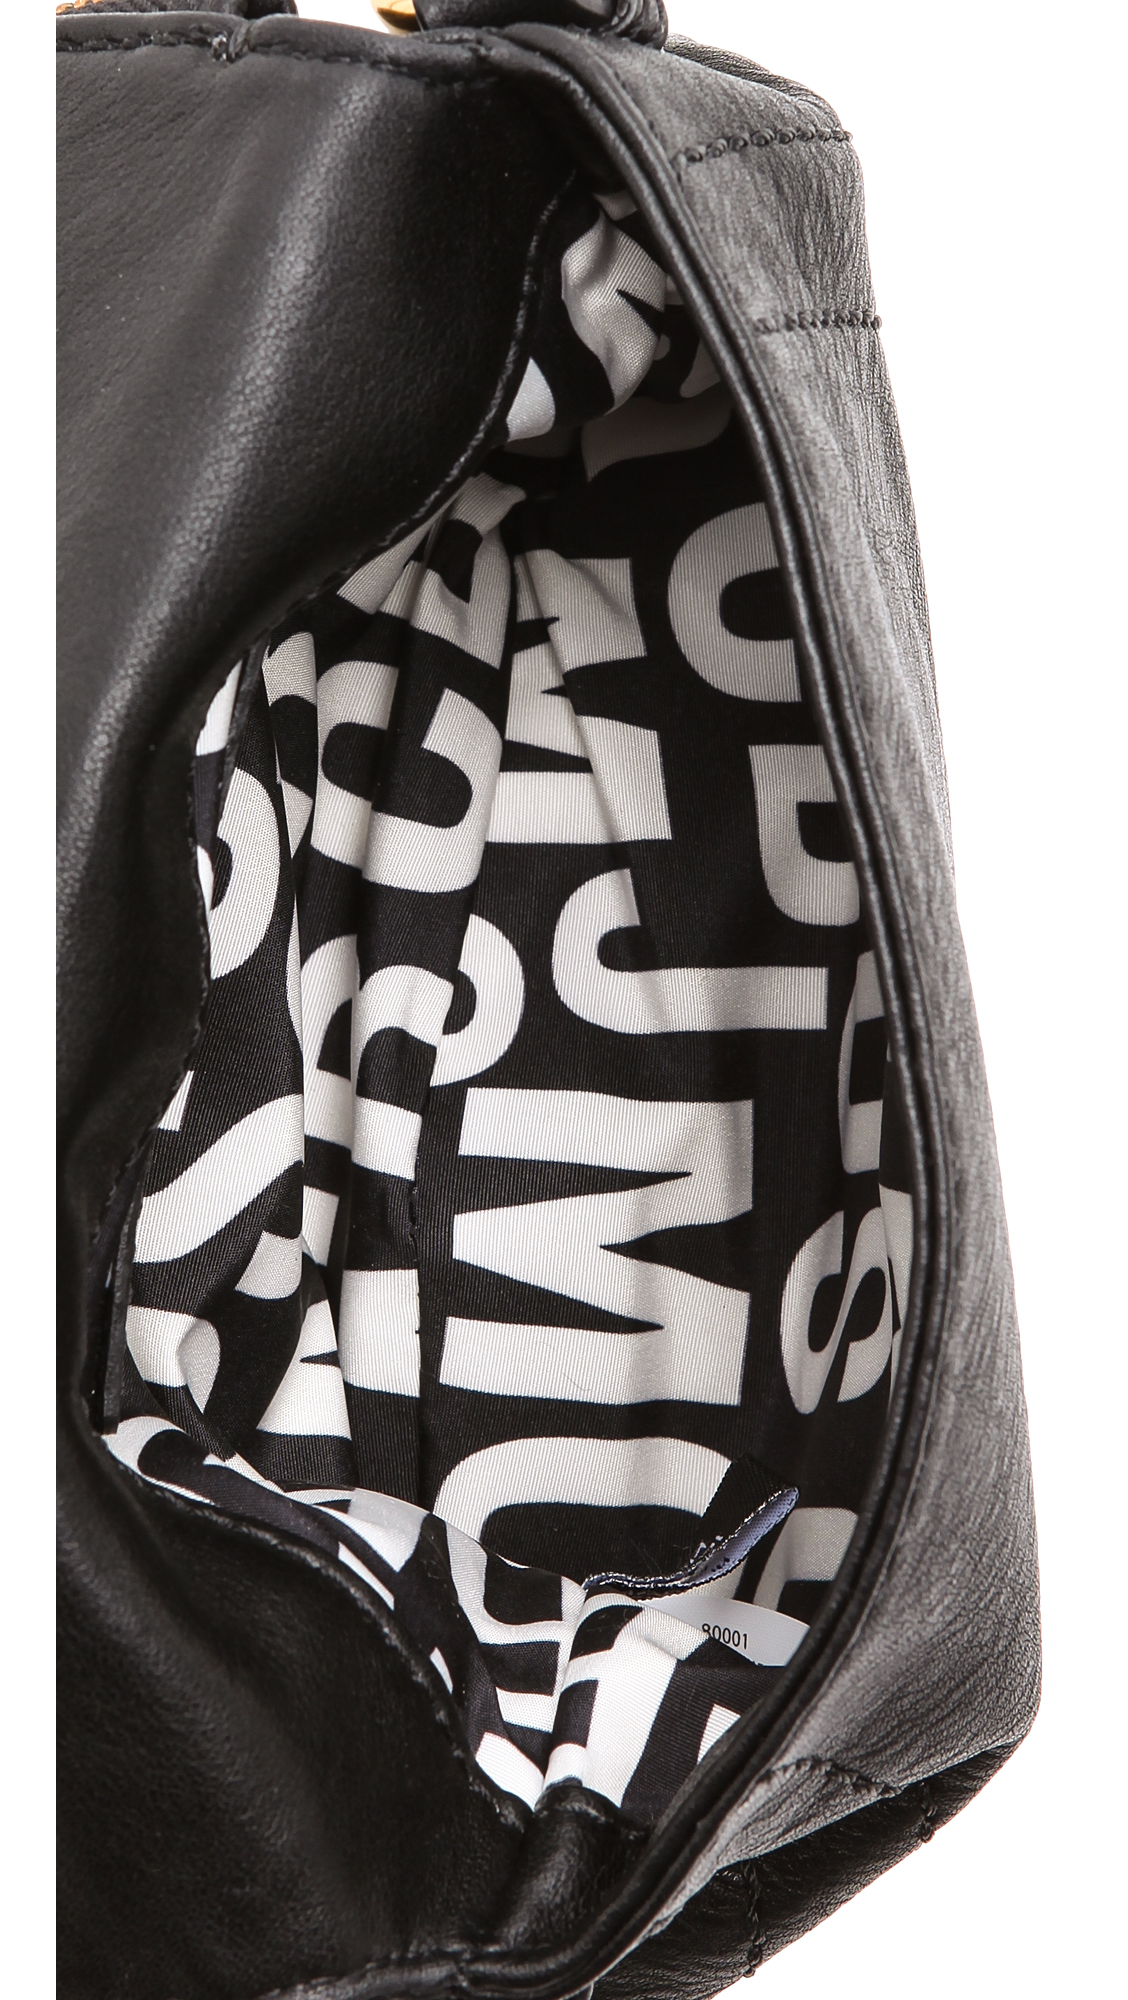 Marc By Marc Jacobs Women's Black Pedal To The Metal Natasha Shoulder Bag See more Marc By Marc Jacobs Shoulder bags. Subscribe to the latest from Marc By Marc Jacobs. Find on store. We check over stores daily and we last saw this product for $ at Saks Fifth disborunmaba.ga: $